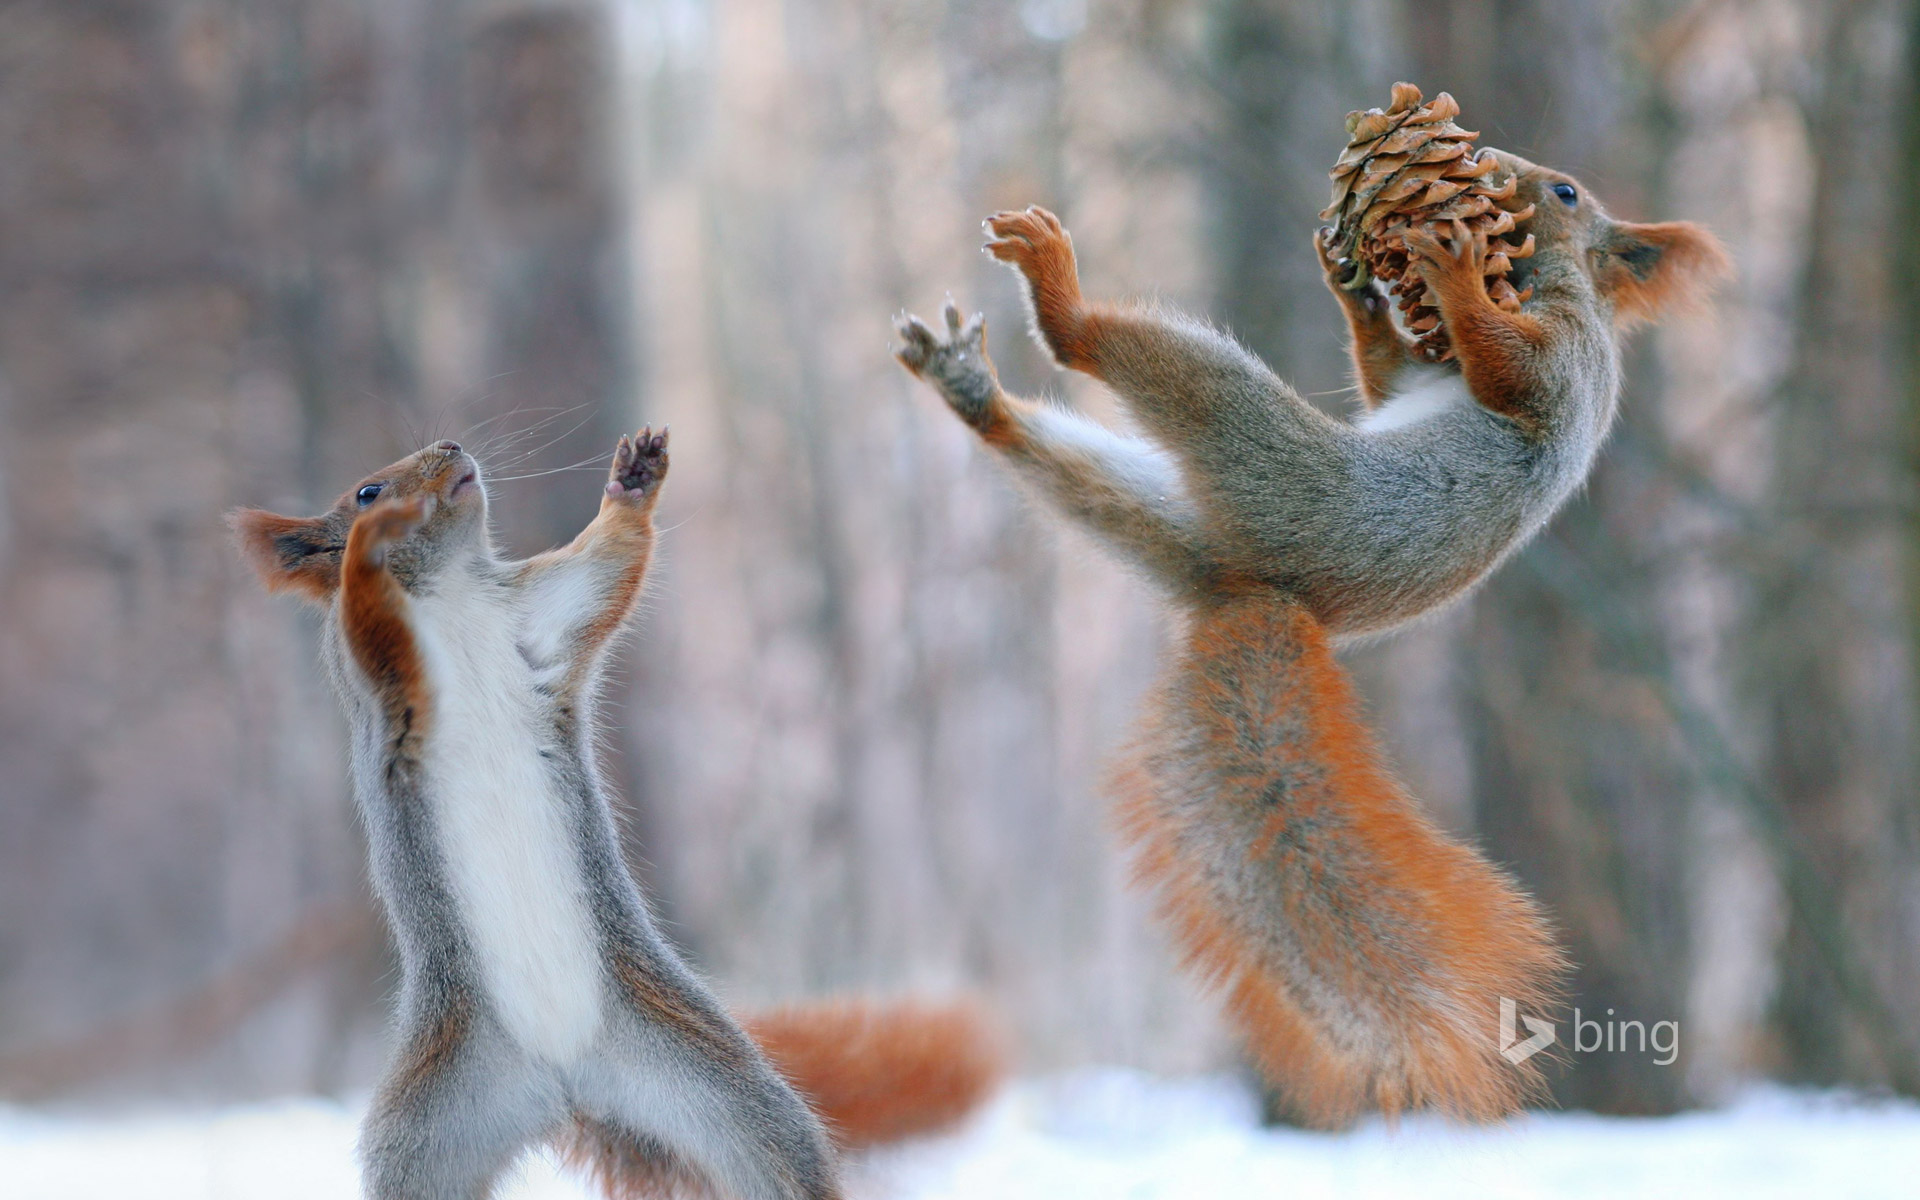 Eurasian red squirrels in action